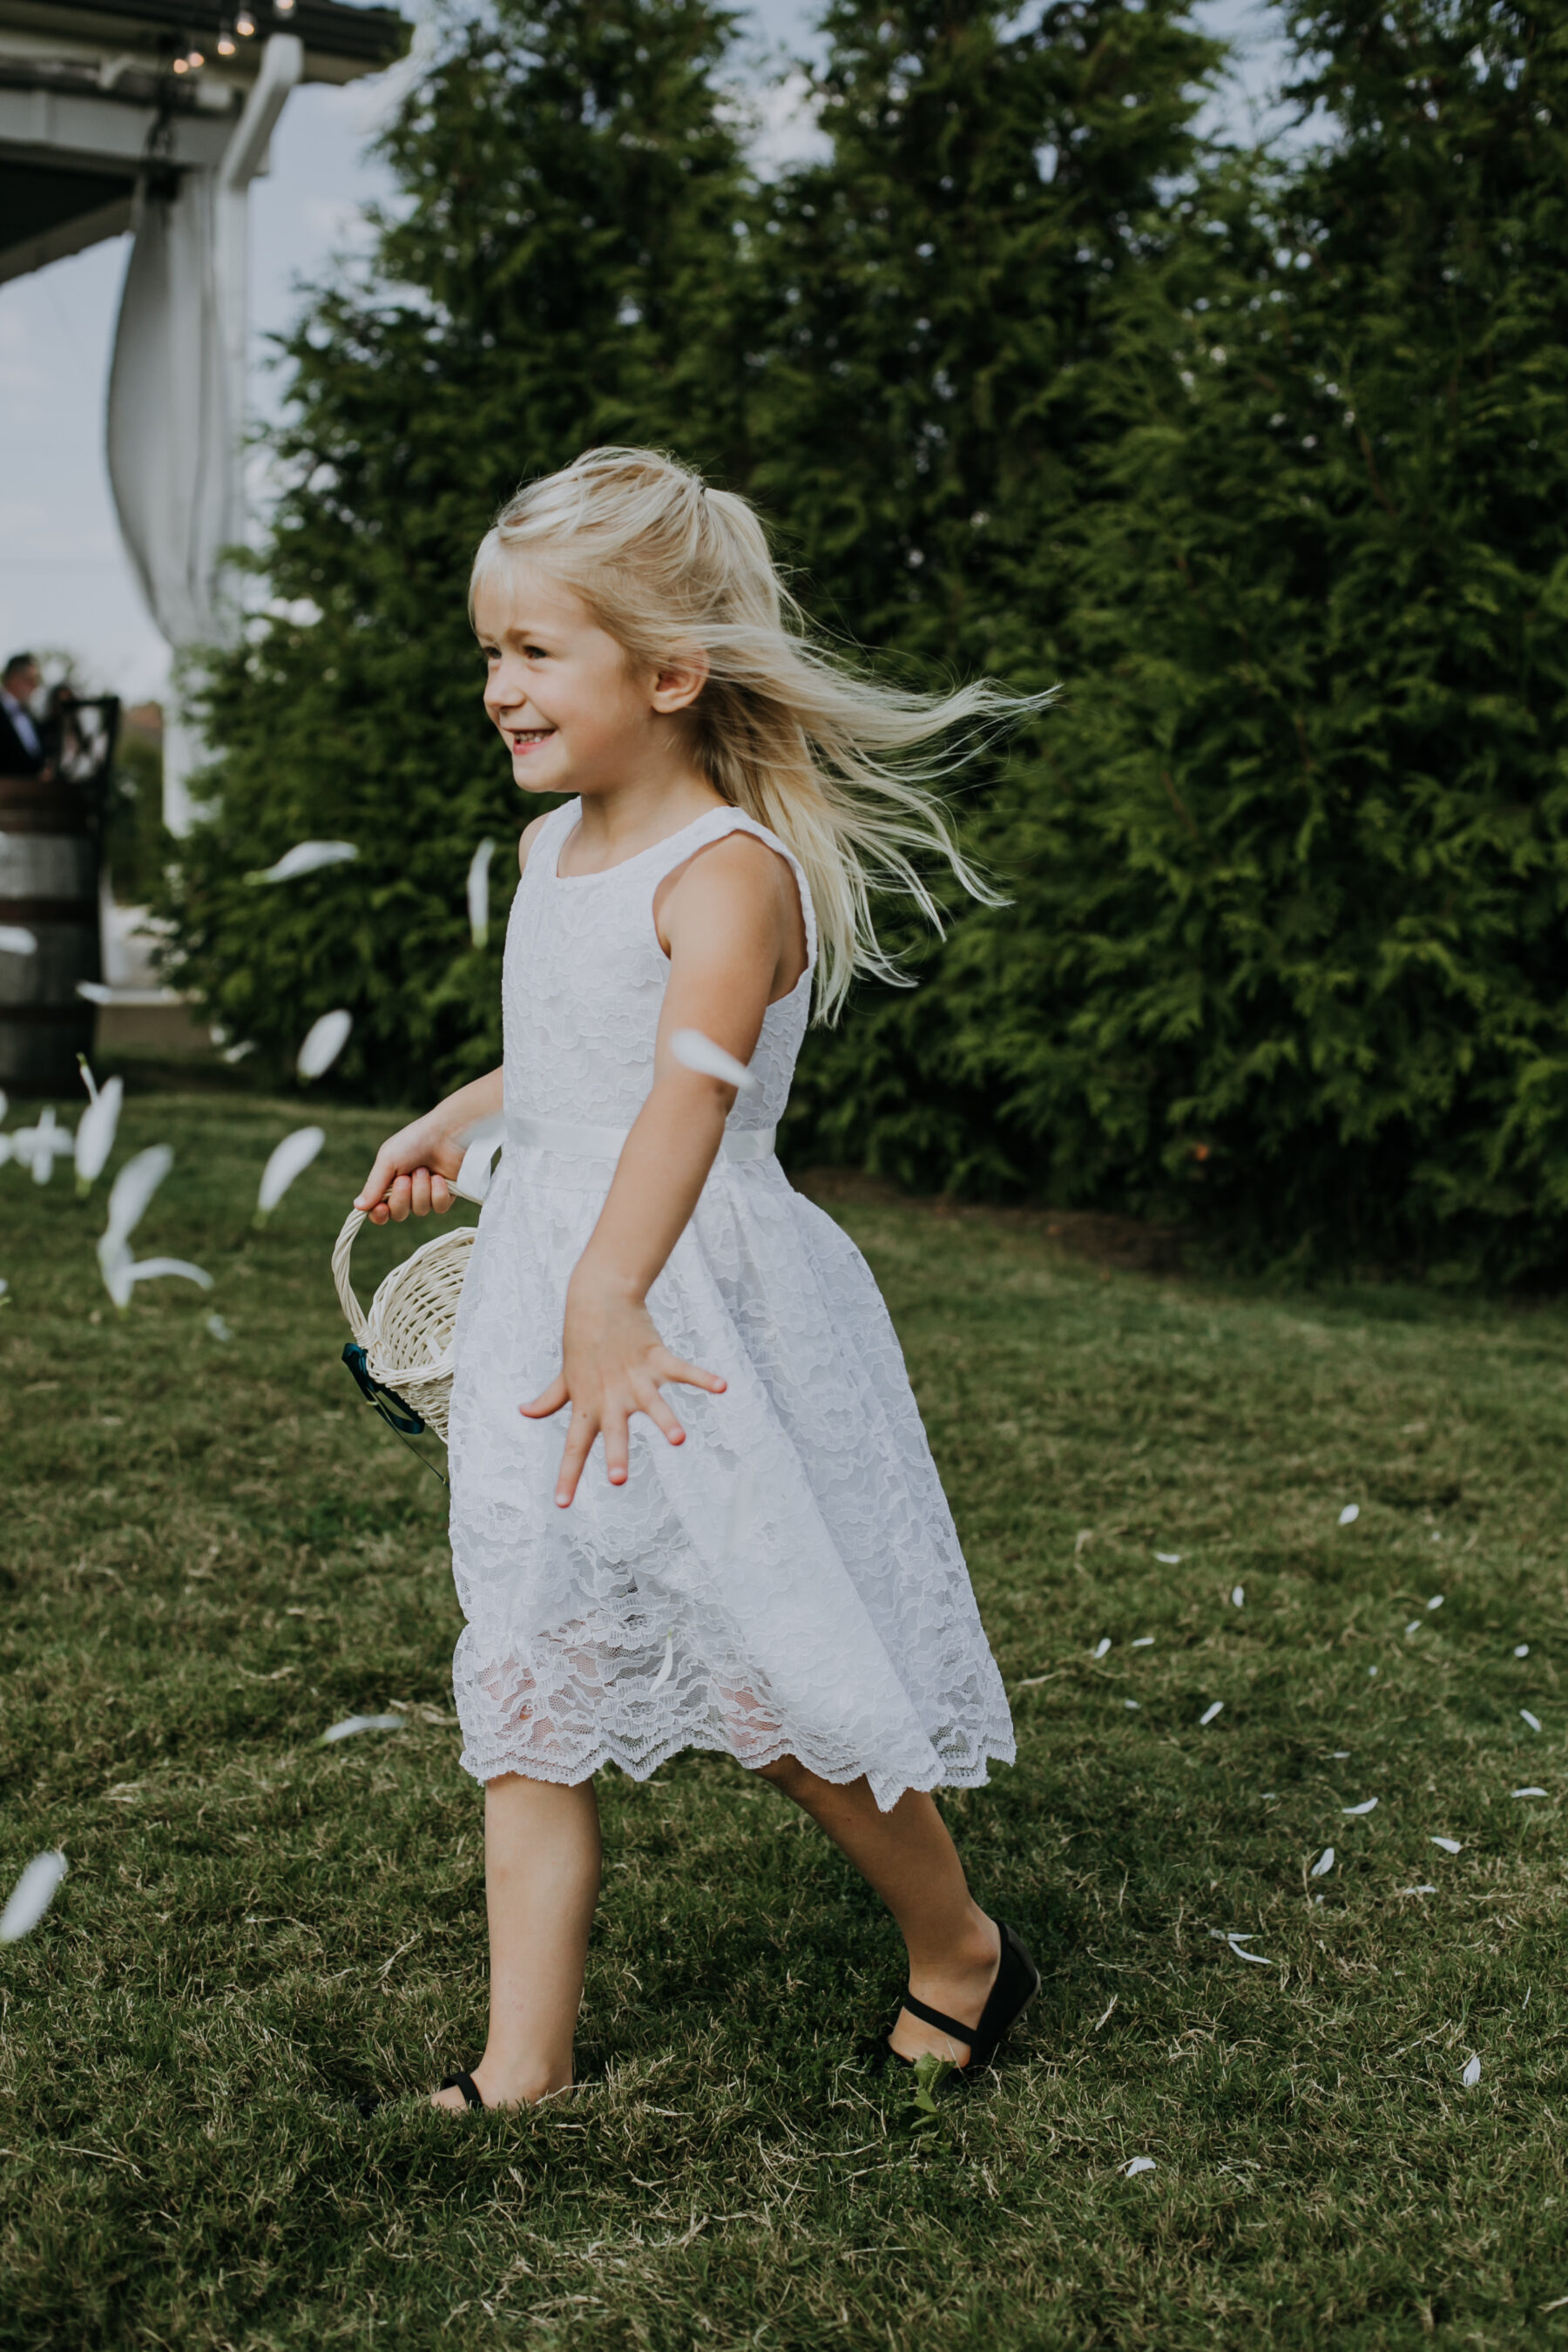 Flower girl portrait: Nashville Wedding with Beautiful Views by Teale Photography featured on Nashville Bride Guide